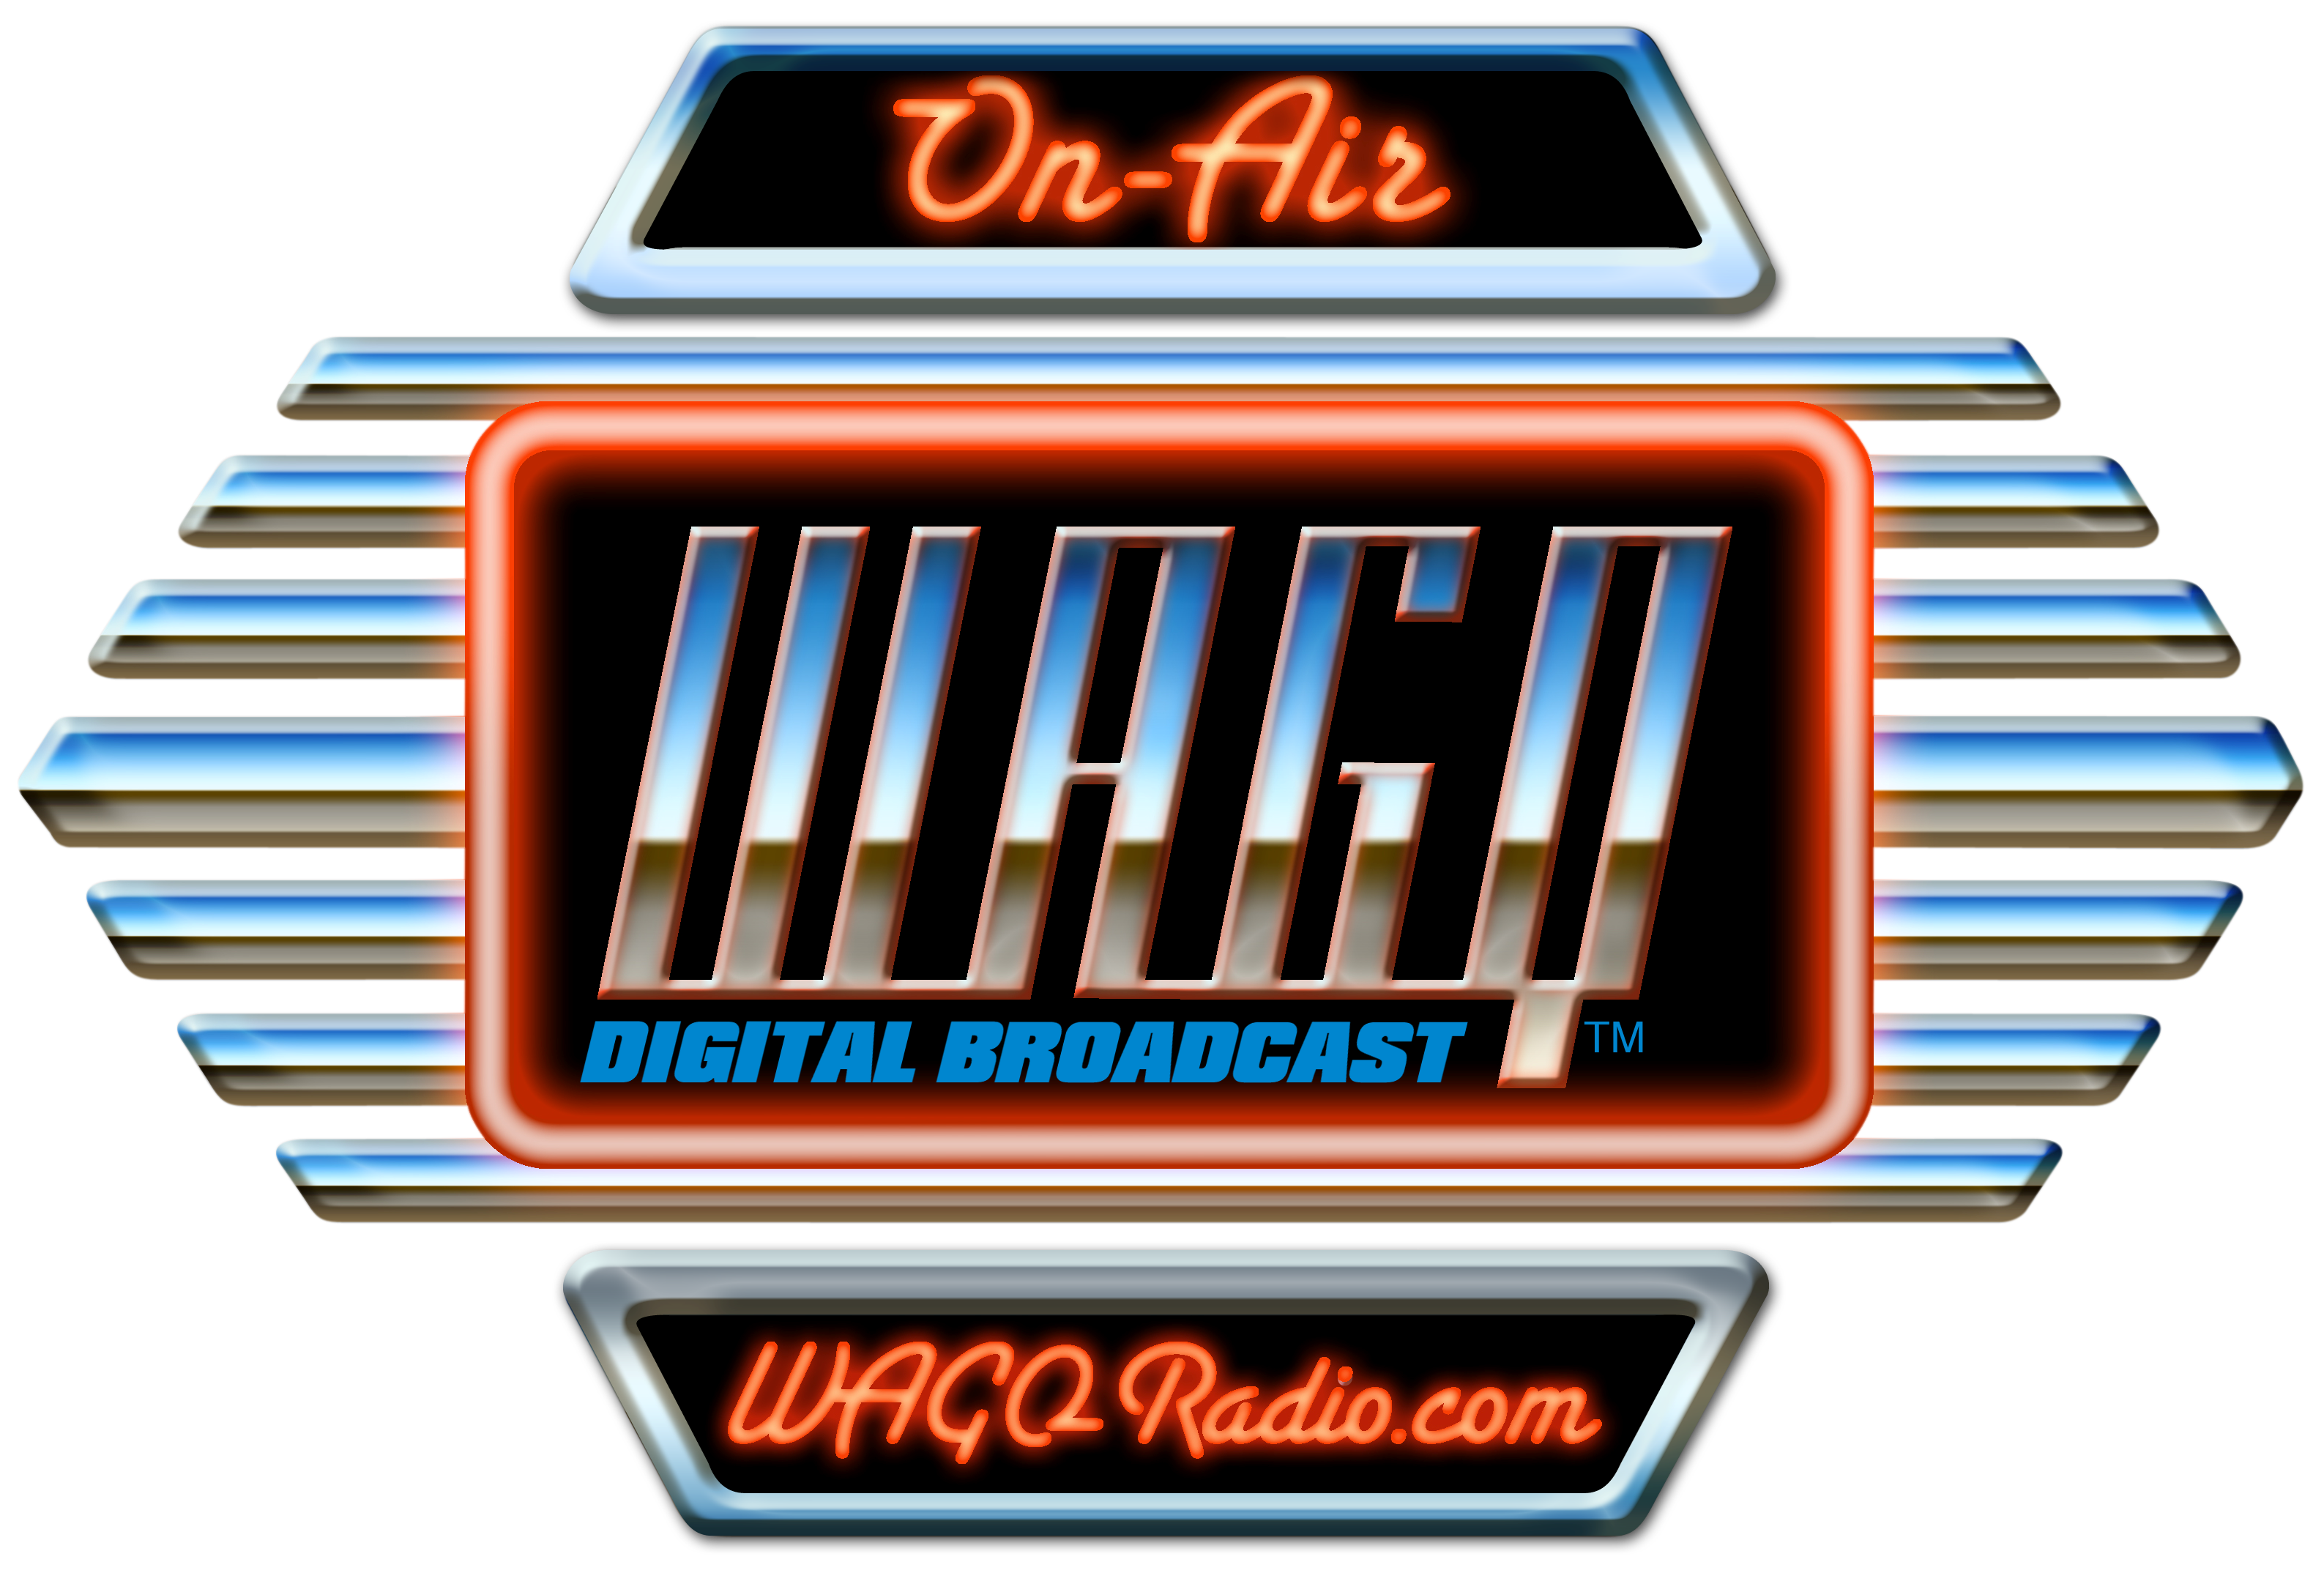 WAGQradio.com © 2012 All Rights Reserved